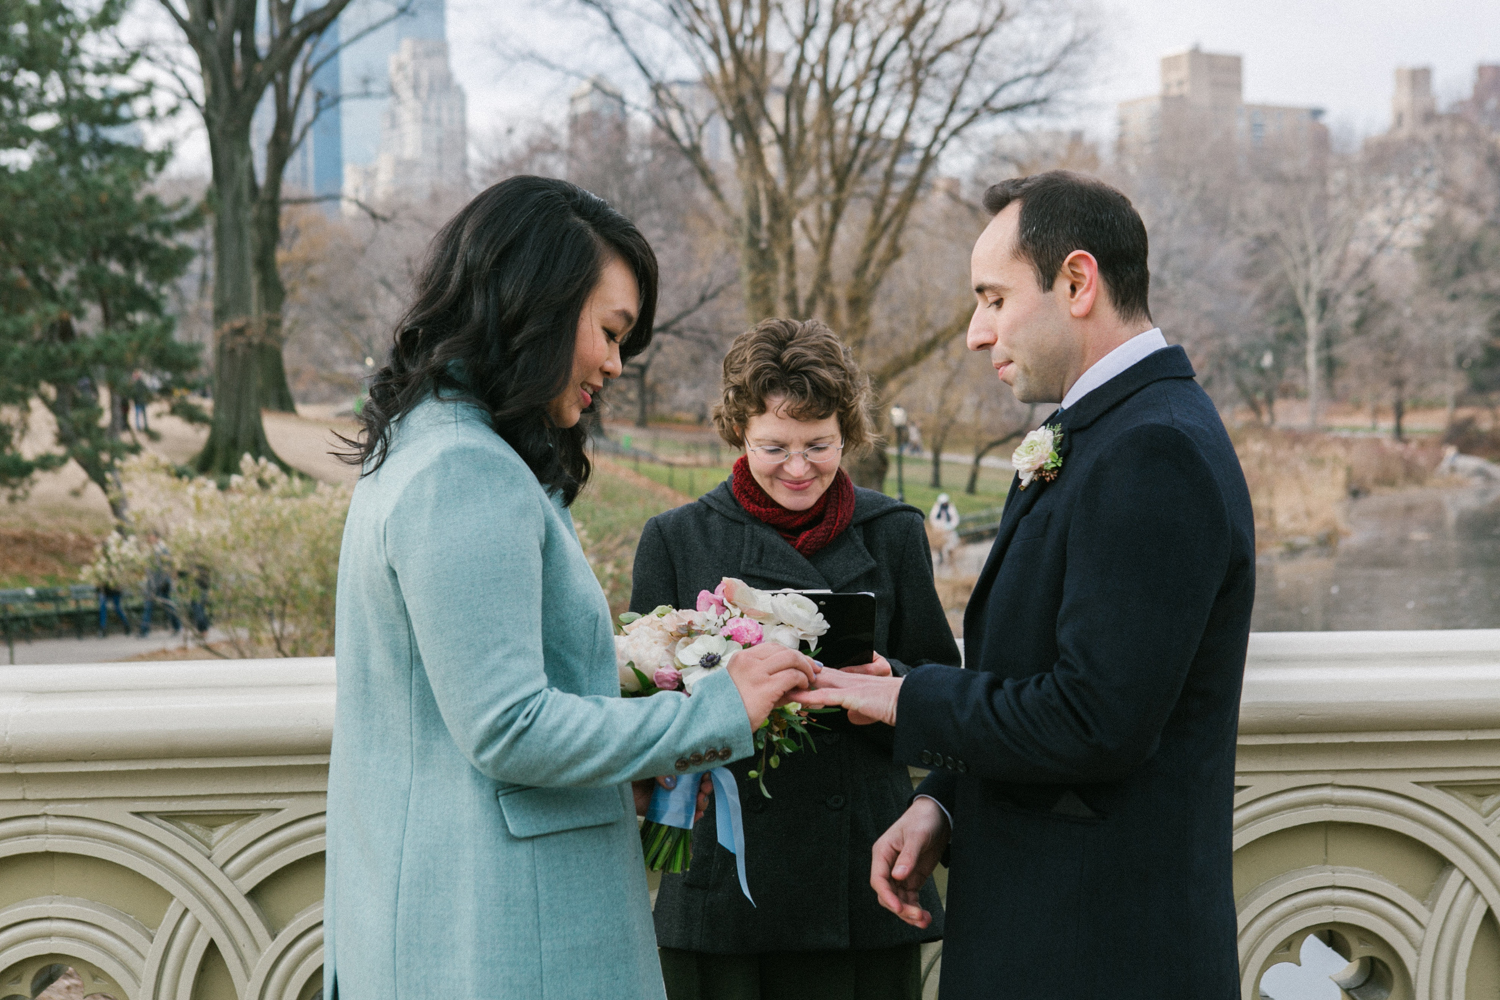 NYC bride and groom exchange rings during elopement